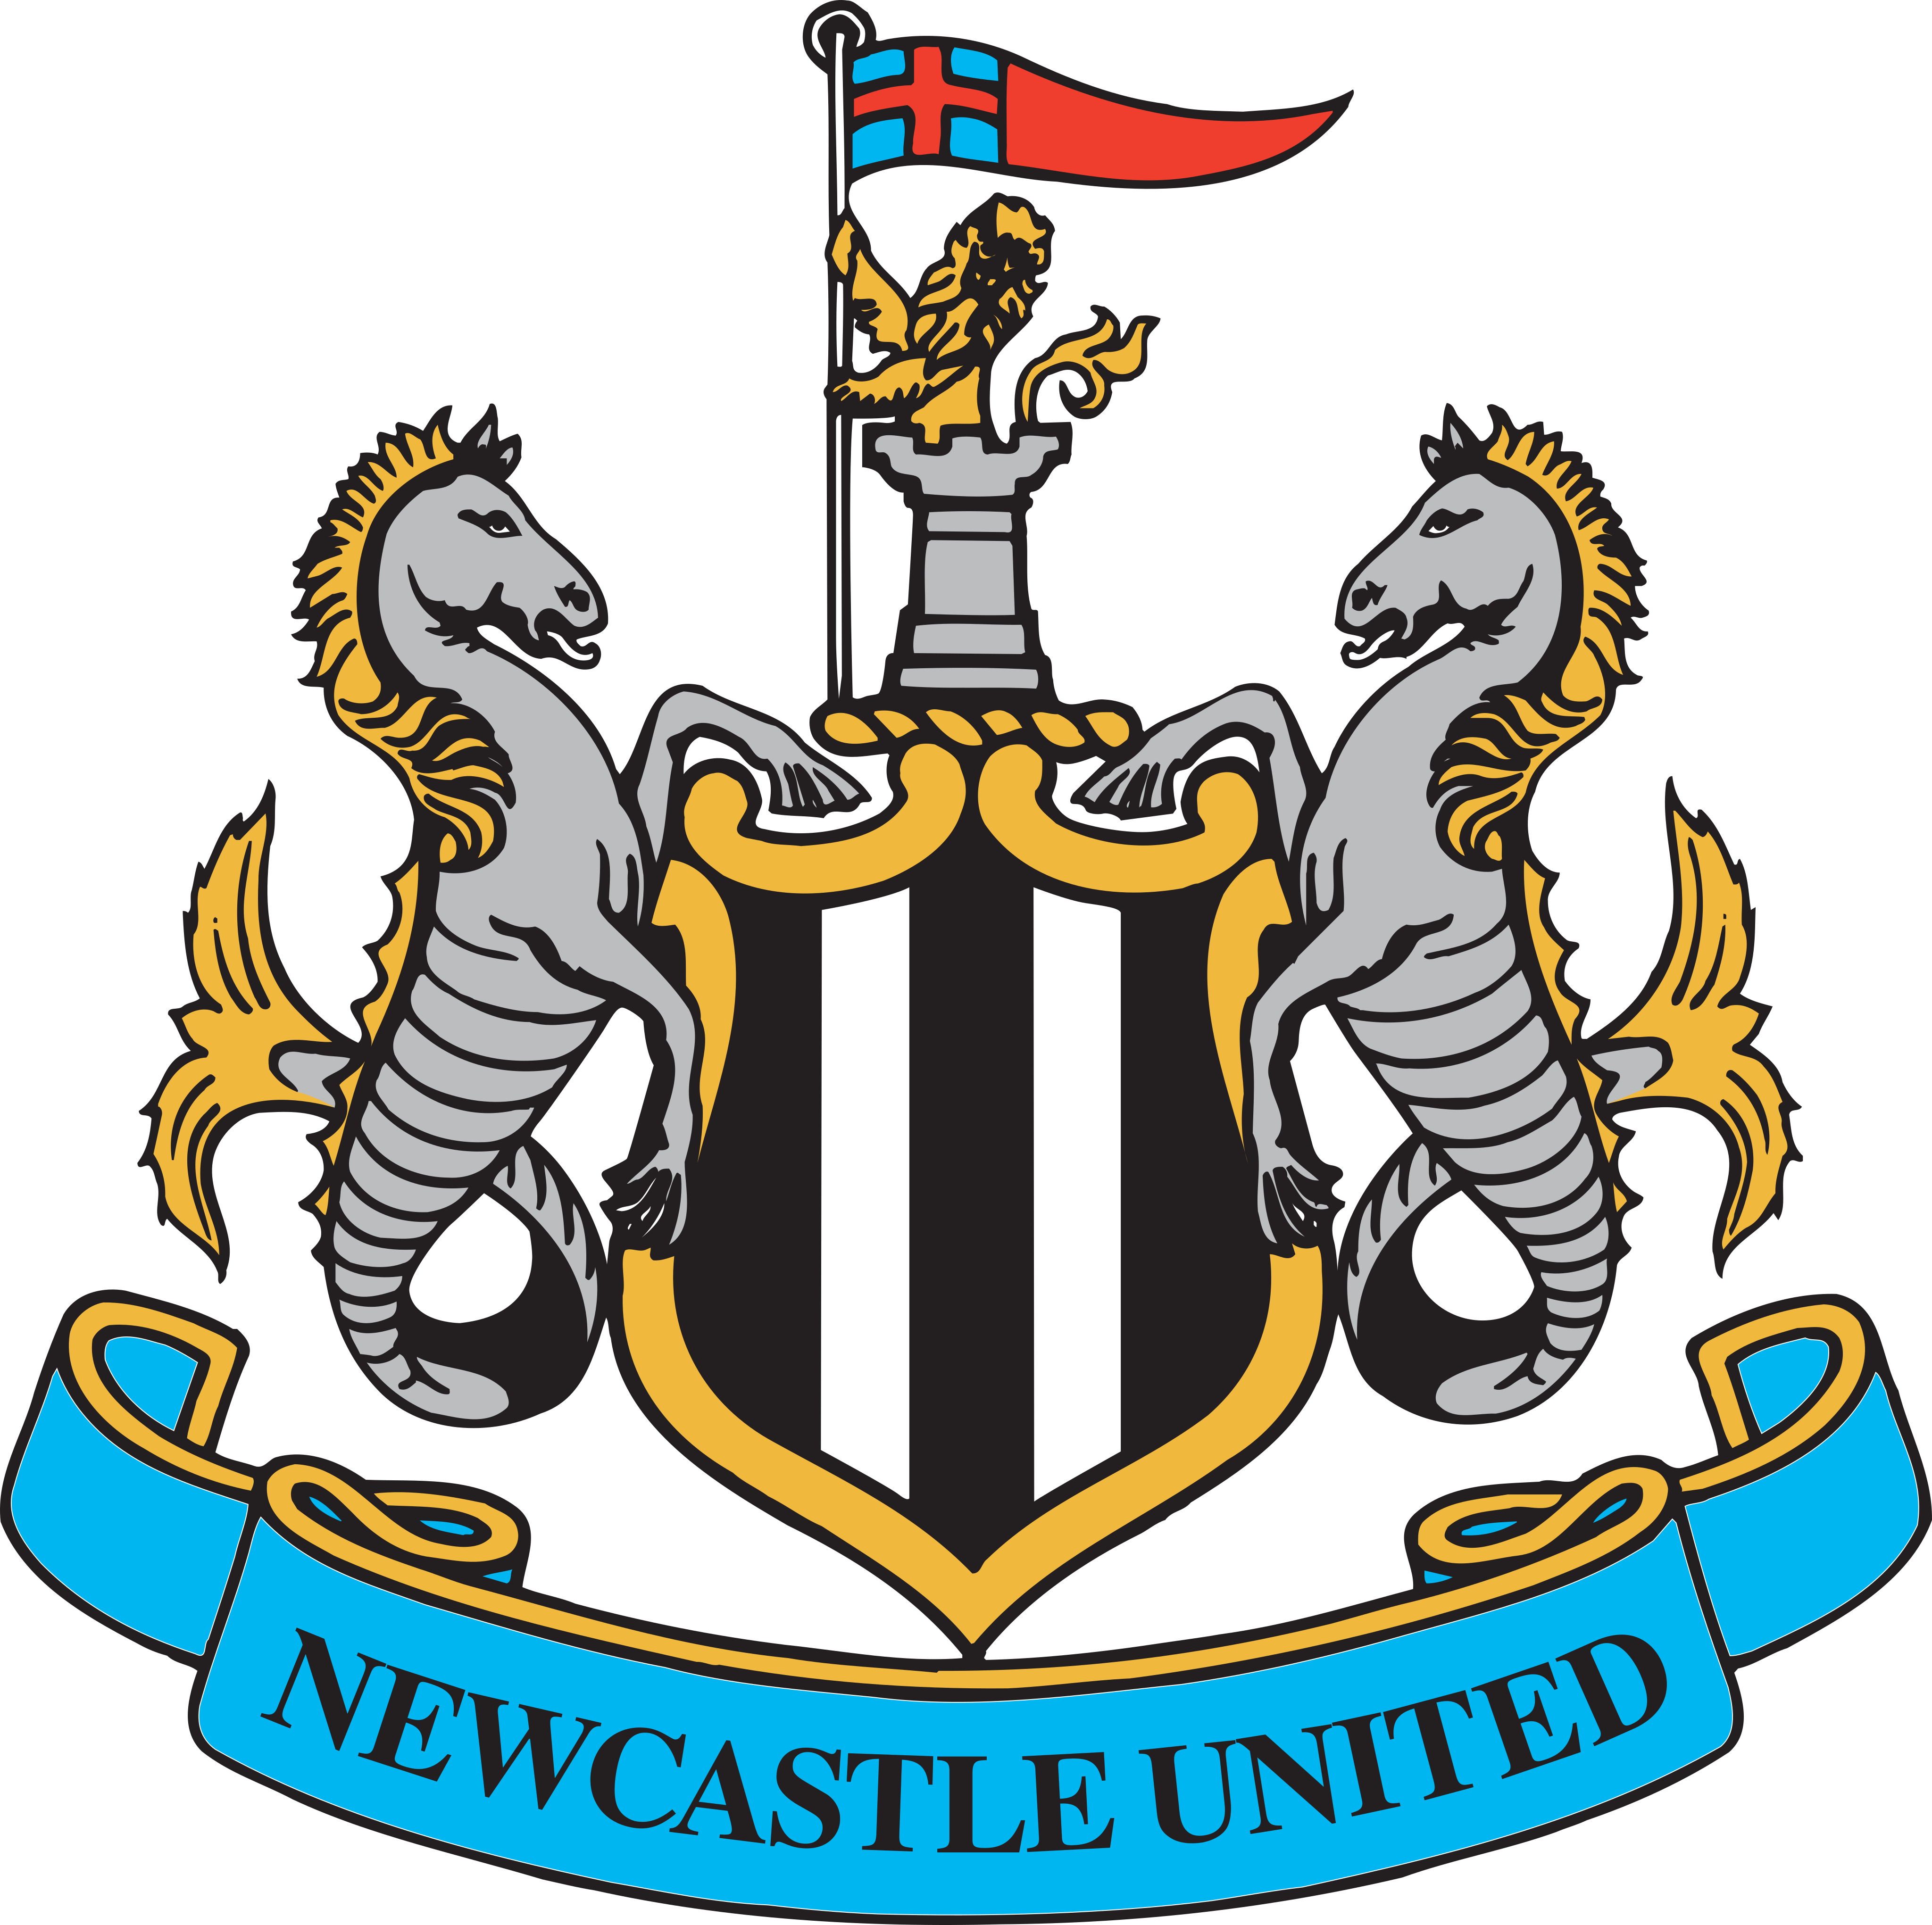 newcastle united logo - Newcastle United FC Logo